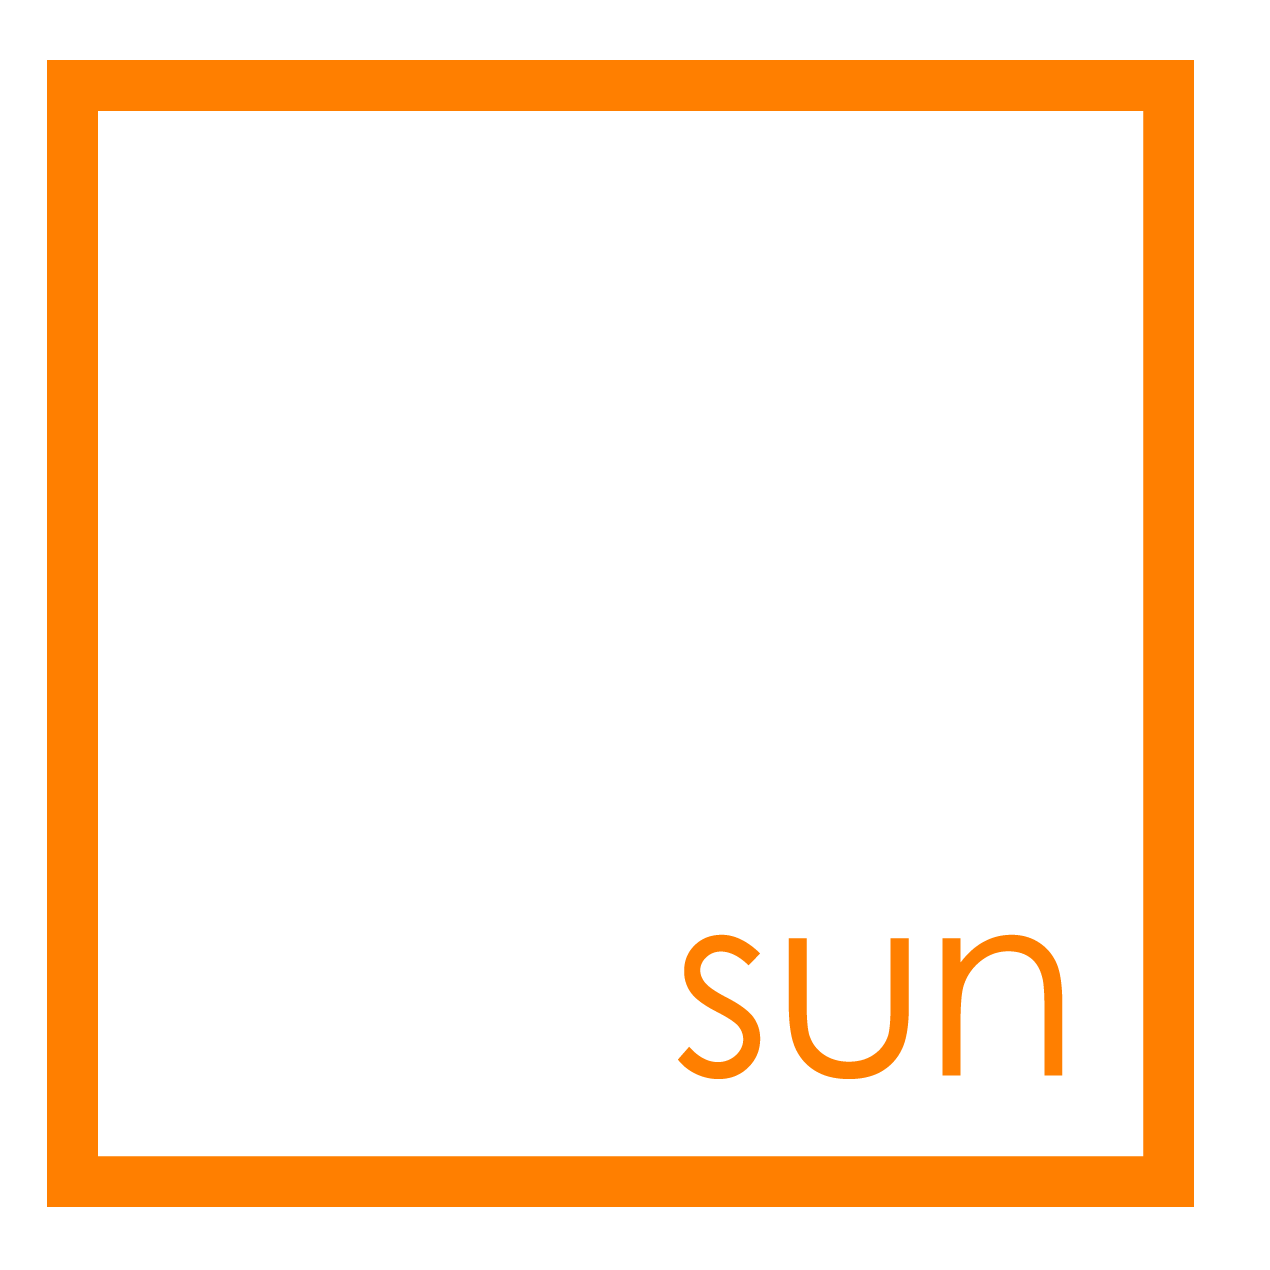 Sunsquare Ltd